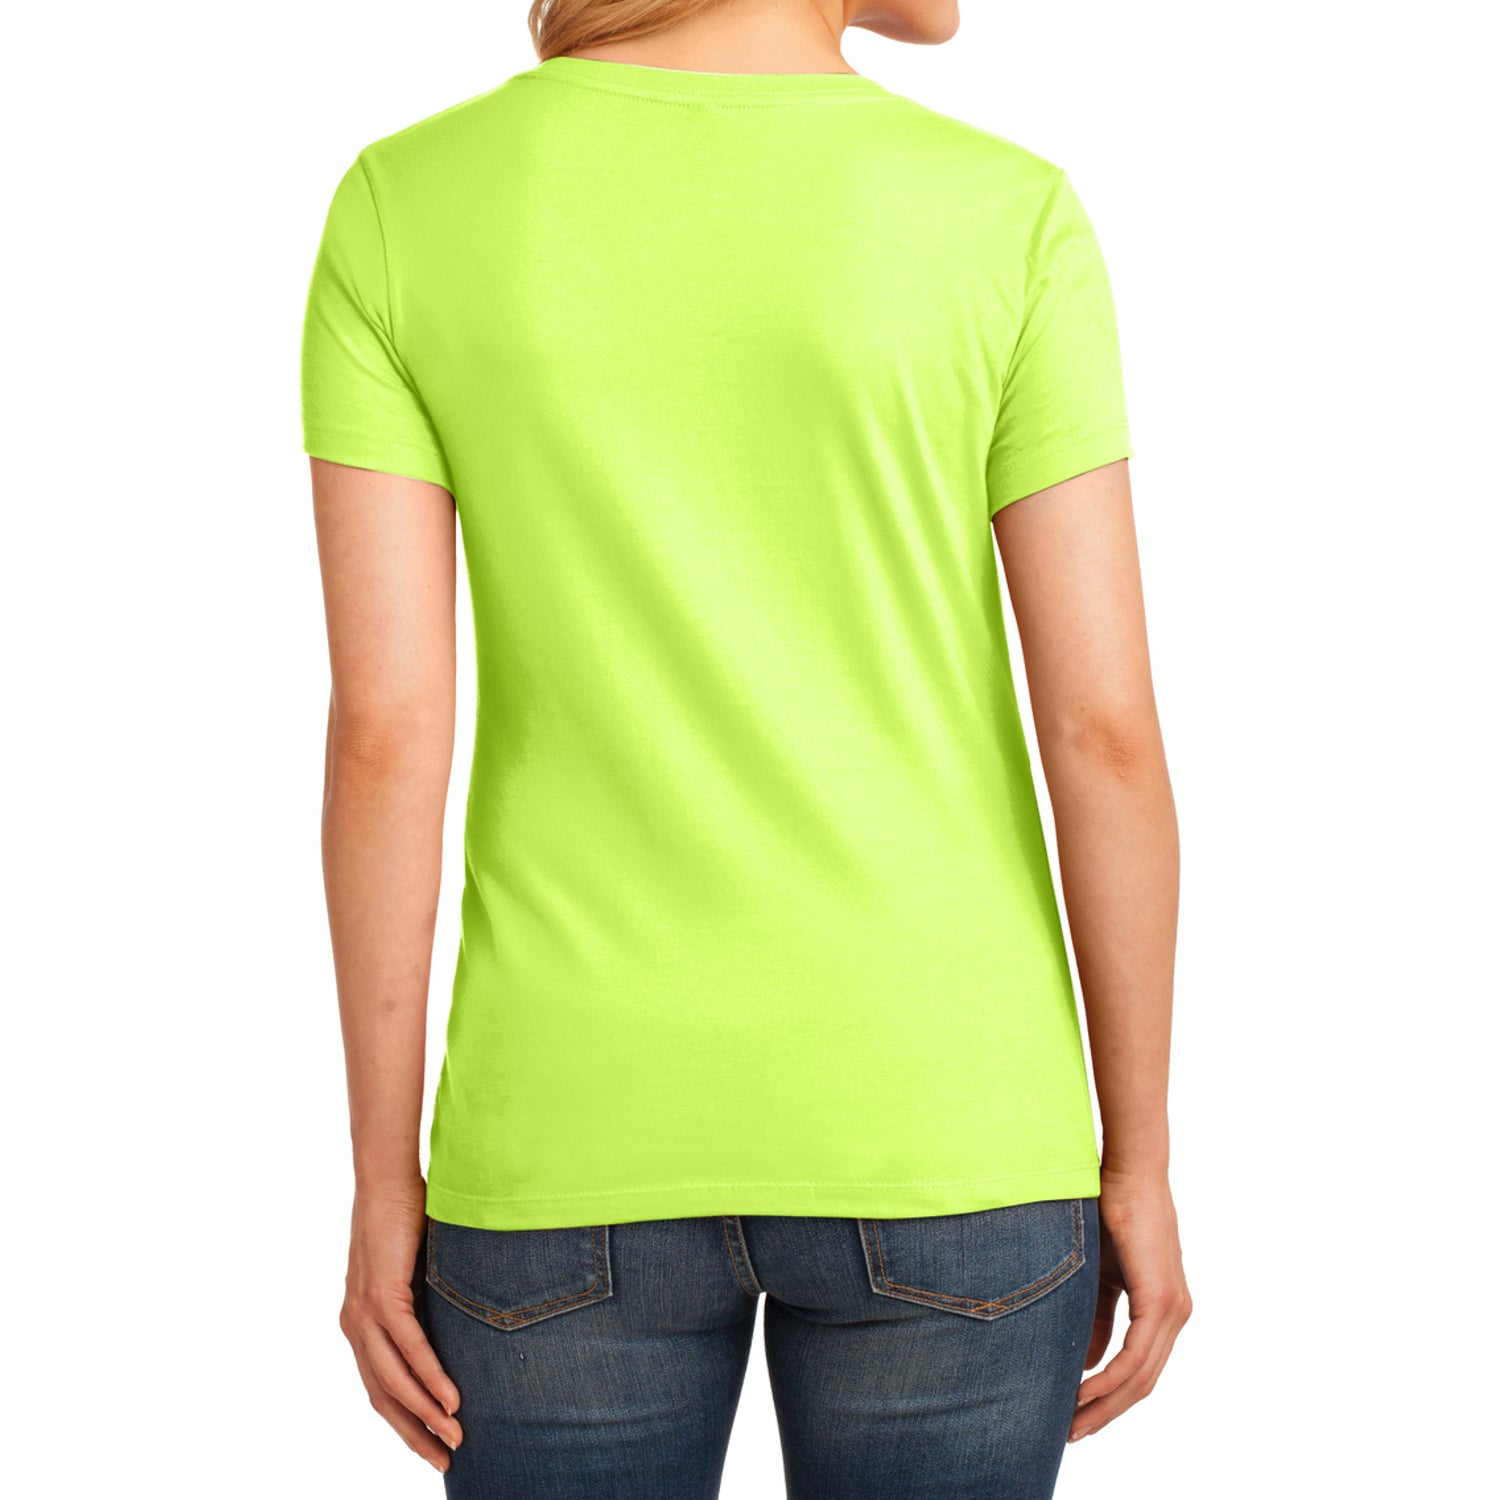 Women's Core Cotton V-Neck Tee - Neon Yellow - Back